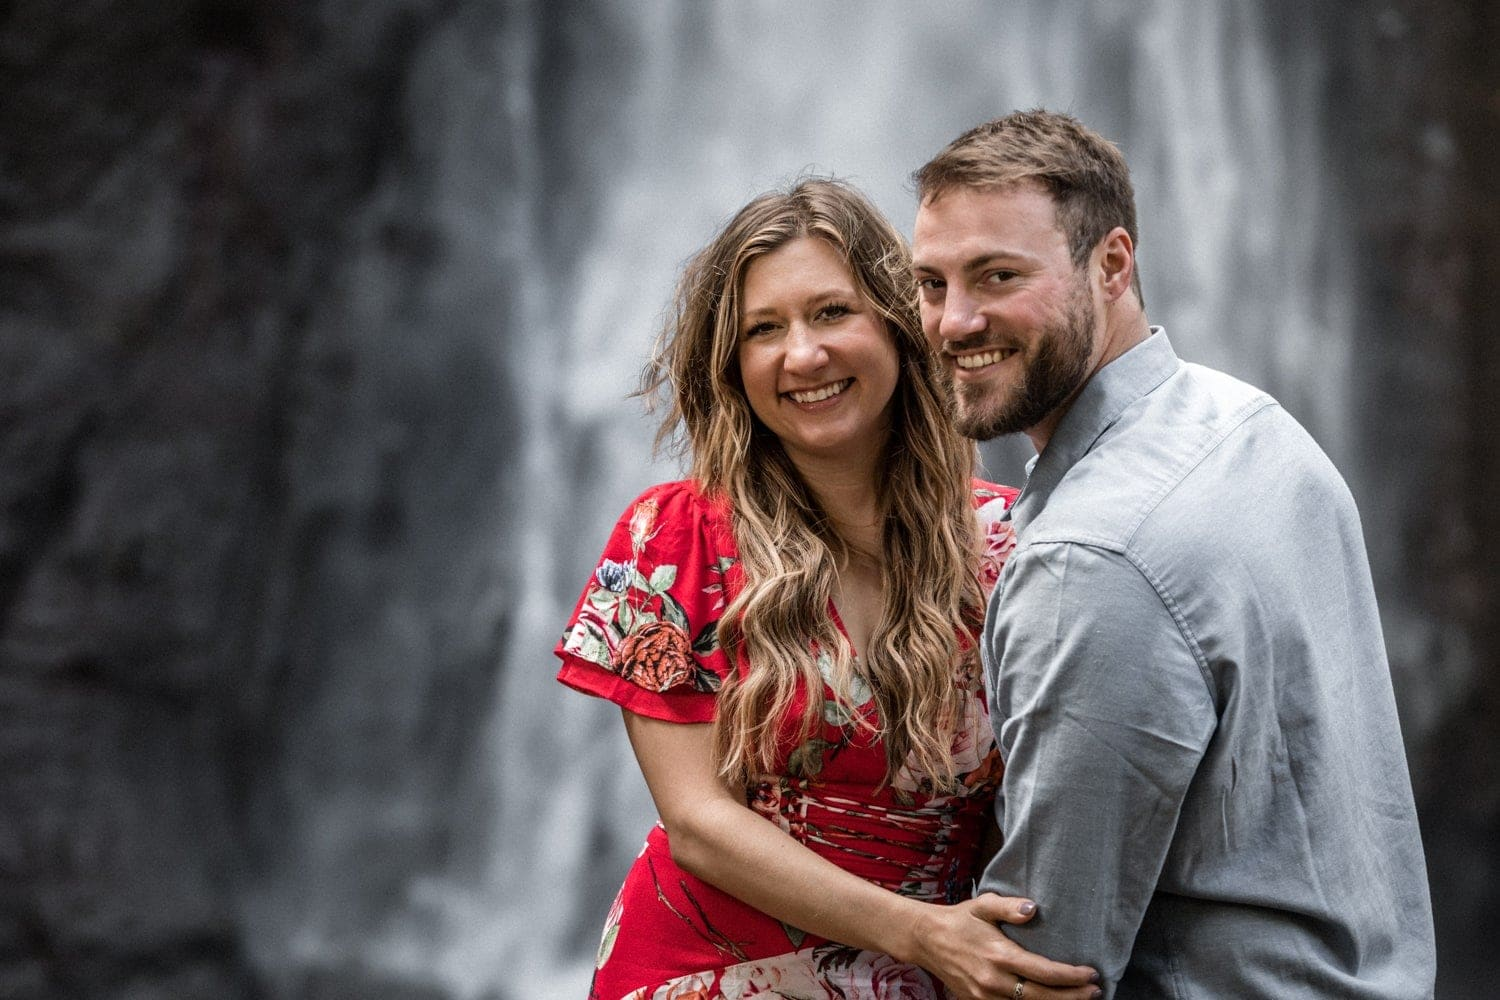 Couple in front of waterfall looks at camera after getting engaged.